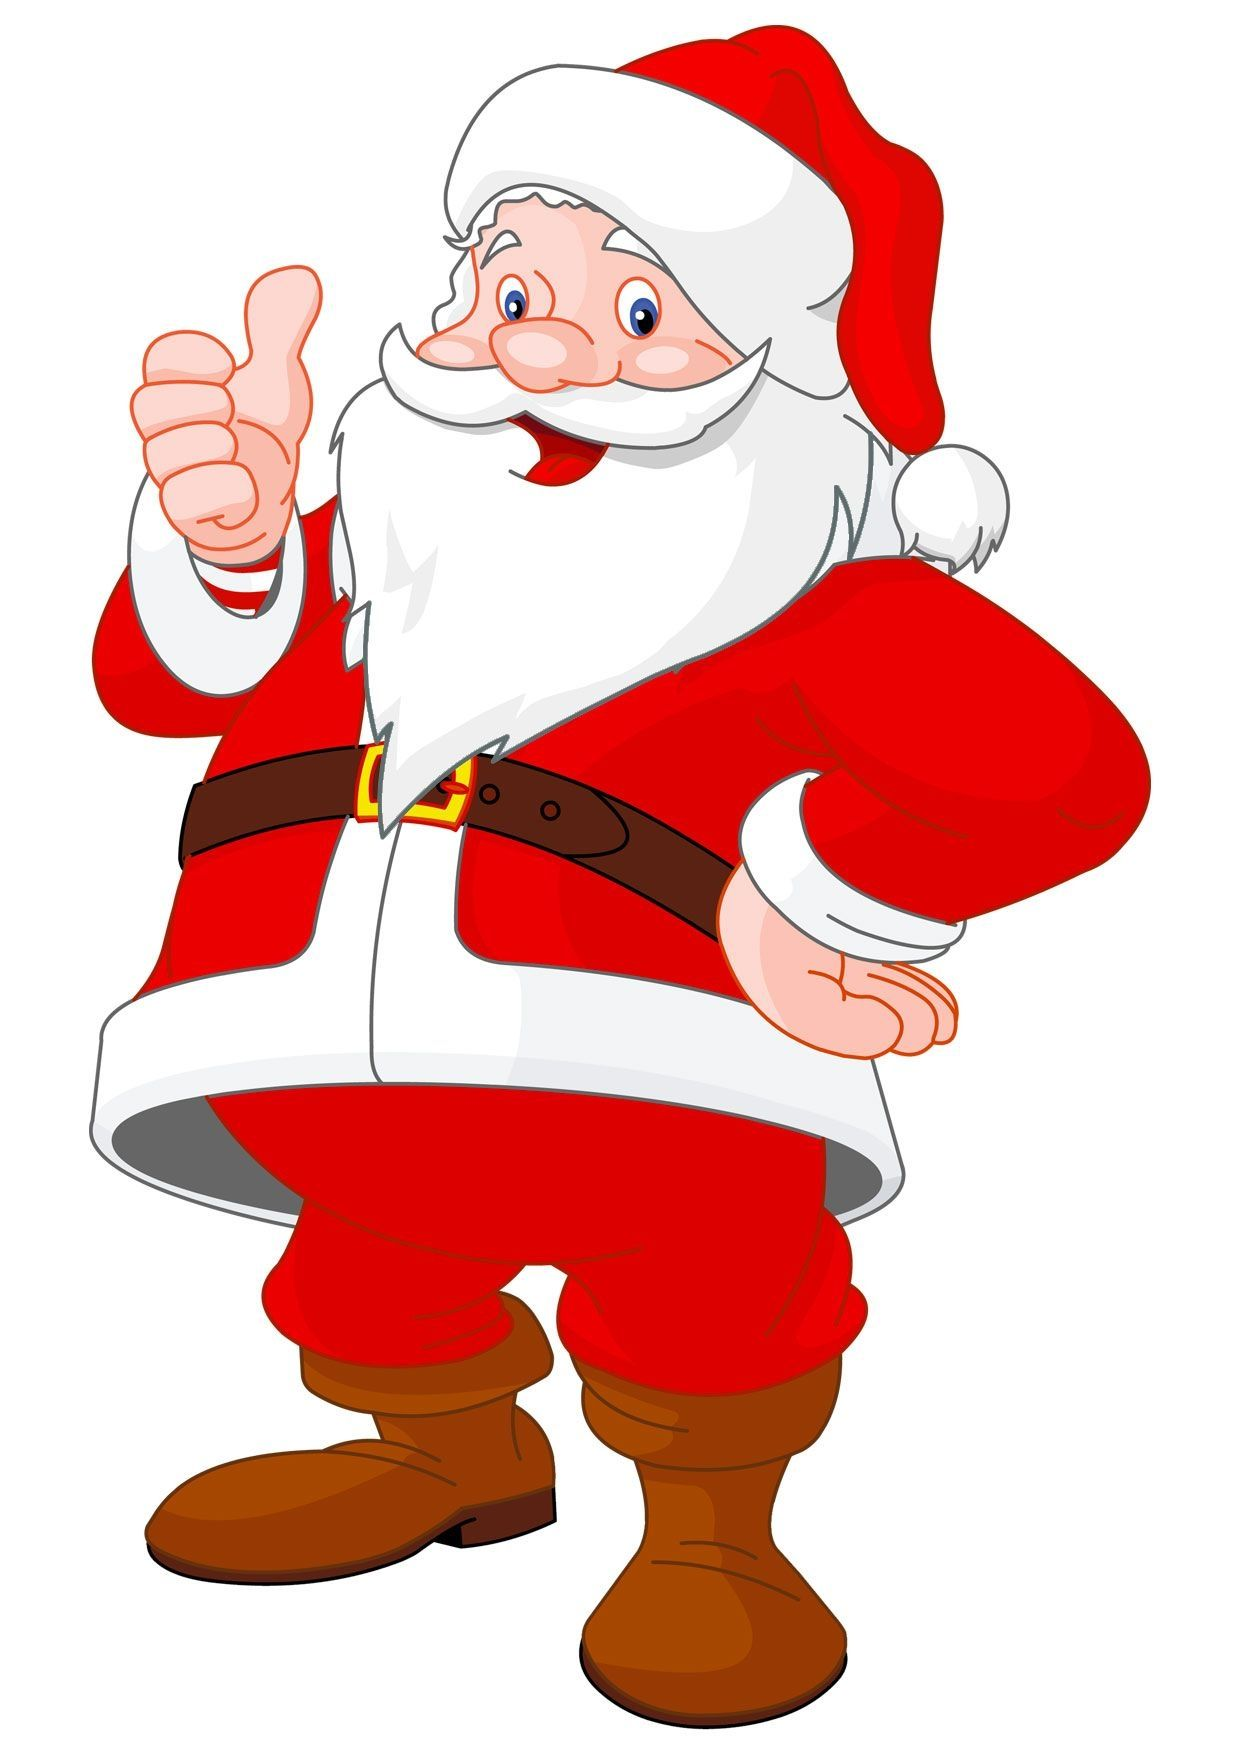 Disegni Di Natale Da Stampare Gia Colorati.30 Disegni Di Babbo Natale Gia Colorati Da Stampare Pianetabambini It Immagini Babbo Natale Da Stamp Santa Claus Images Christmas Cartoons Santa Claus Vector